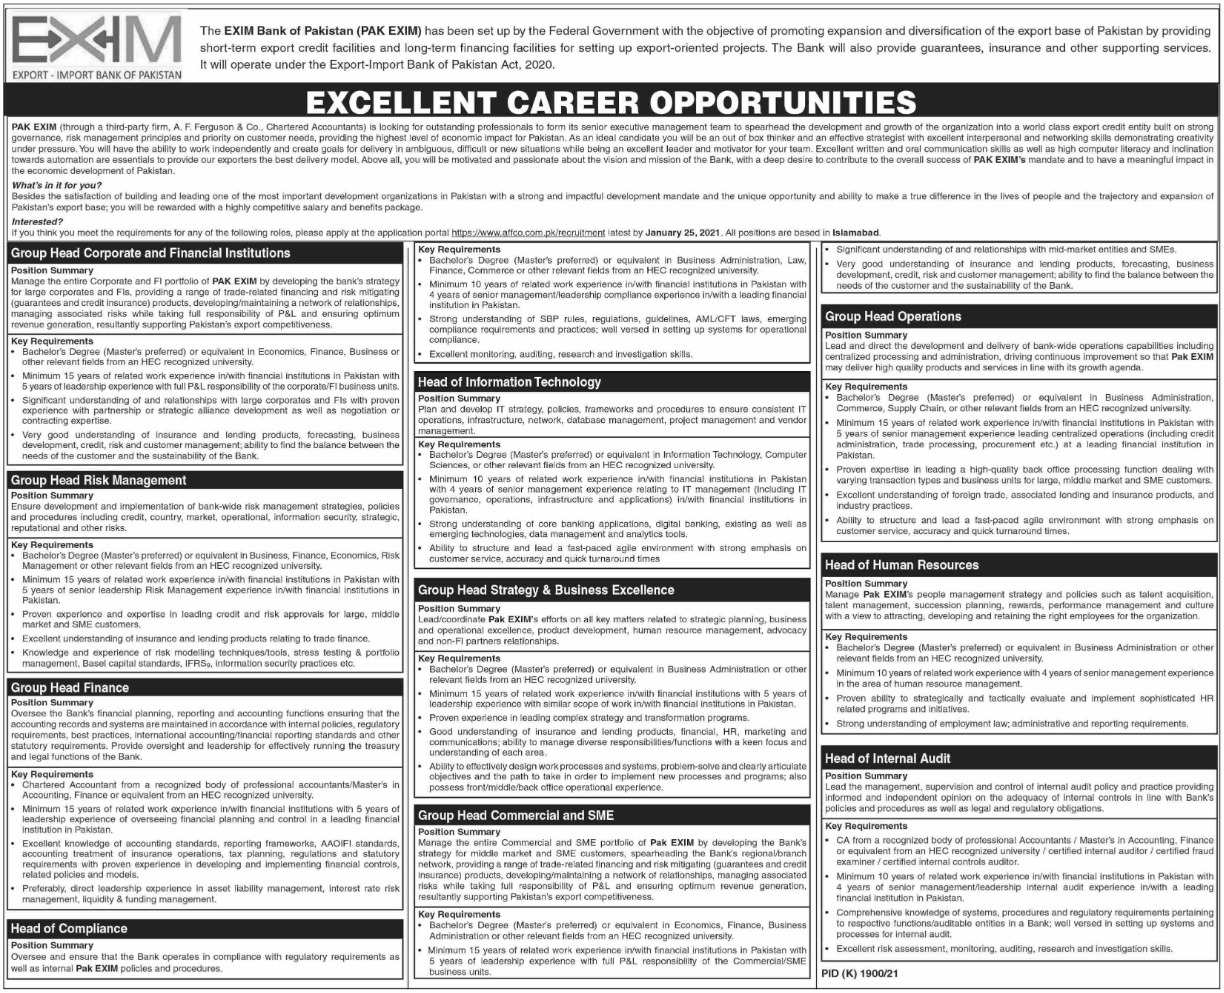 EXIM Bank of Pakistan PAK EXIM Jobs January 2021